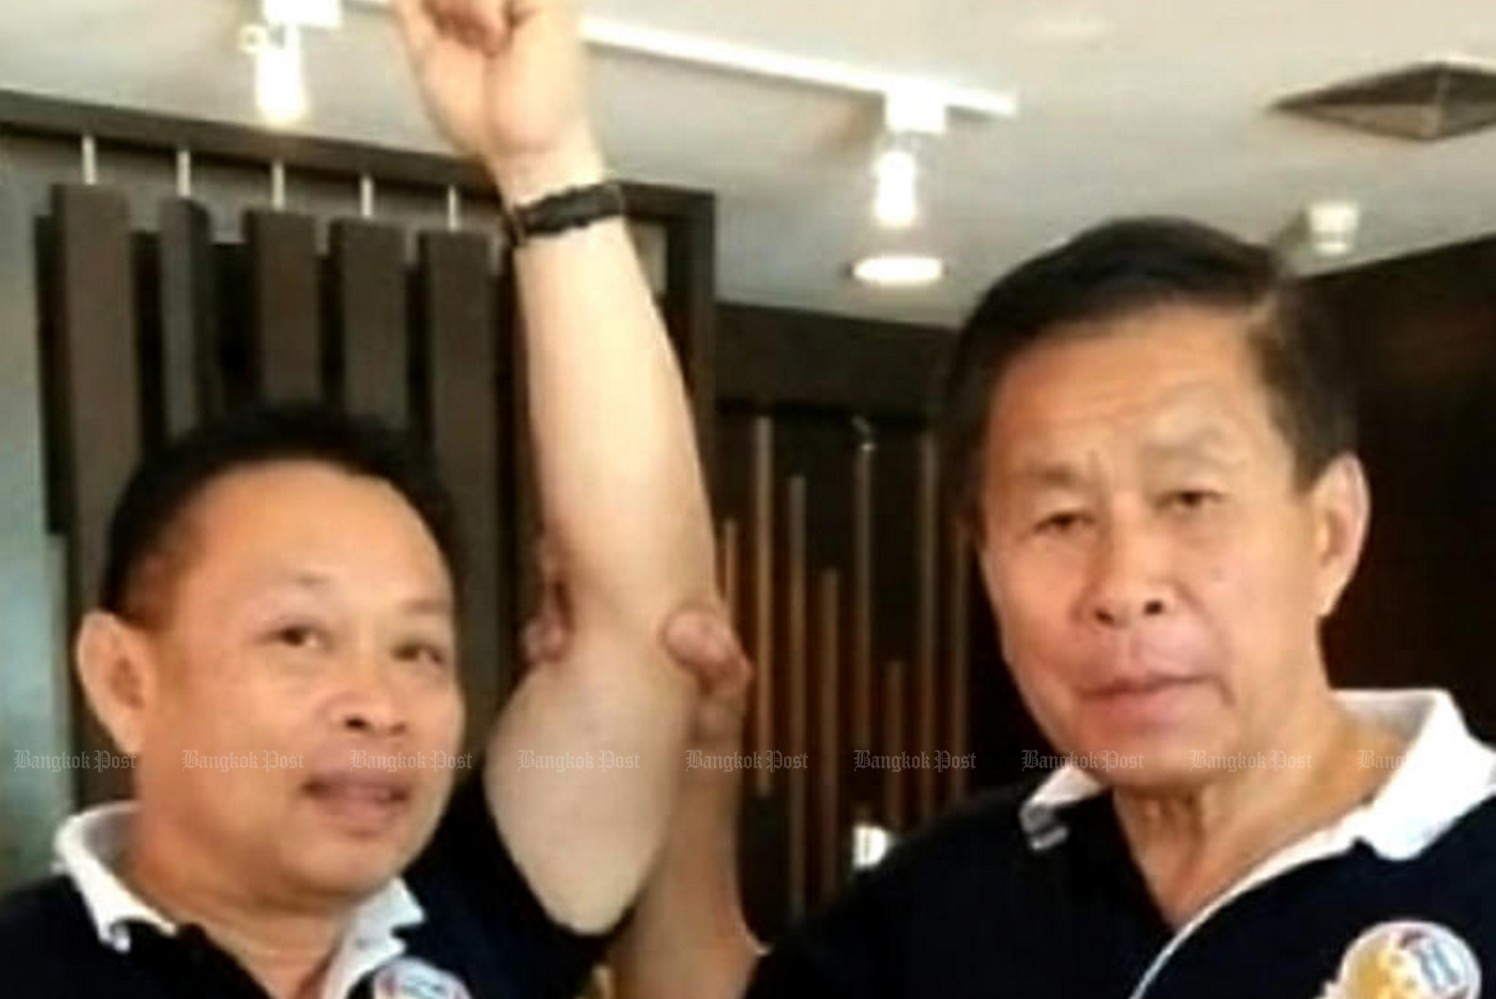 Suban Mahachanon, left, a party-list candidate, with Seri Ruam Thai Party leader Sereepisuth Temeeyaves in June 2019. (File photo from Suban Mahachanon Facebook page)